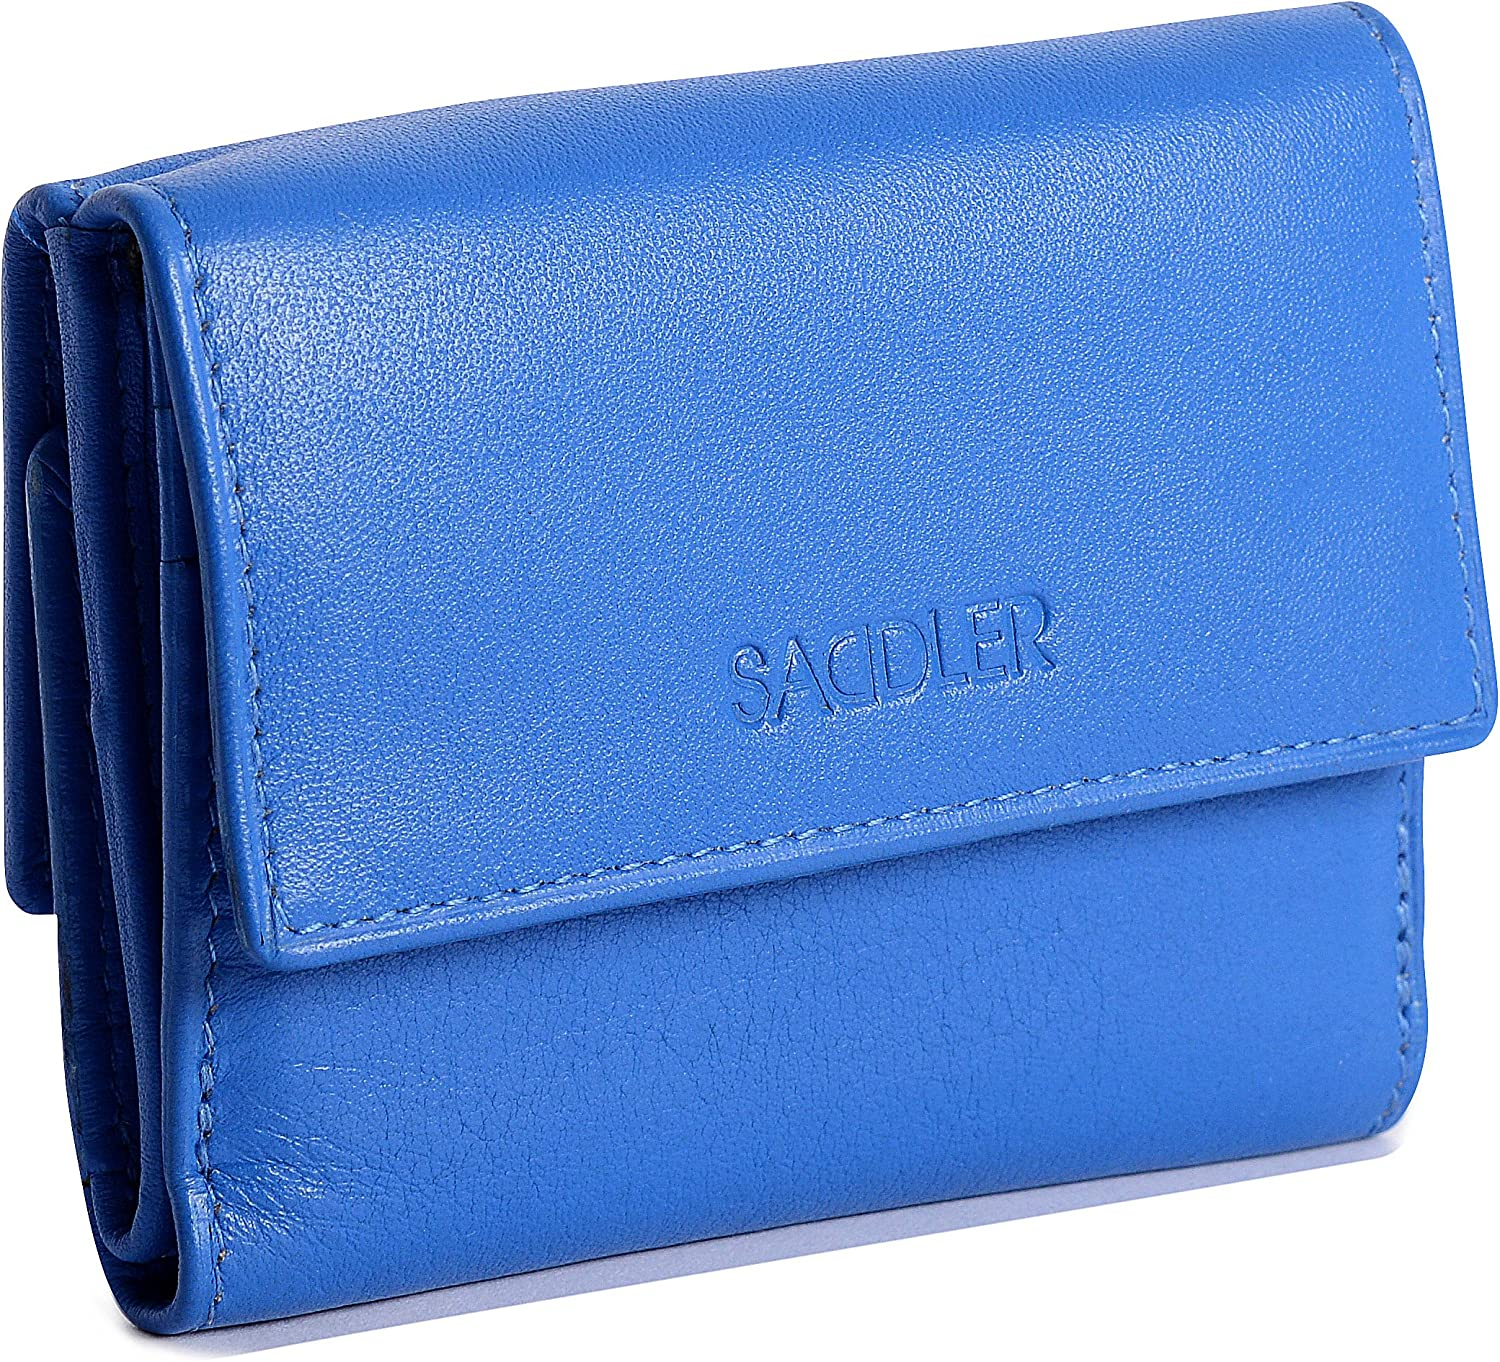 SADDLER Womens Luxurious Leather Mini Purse Wallet | Designer Purse | Gift Boxed